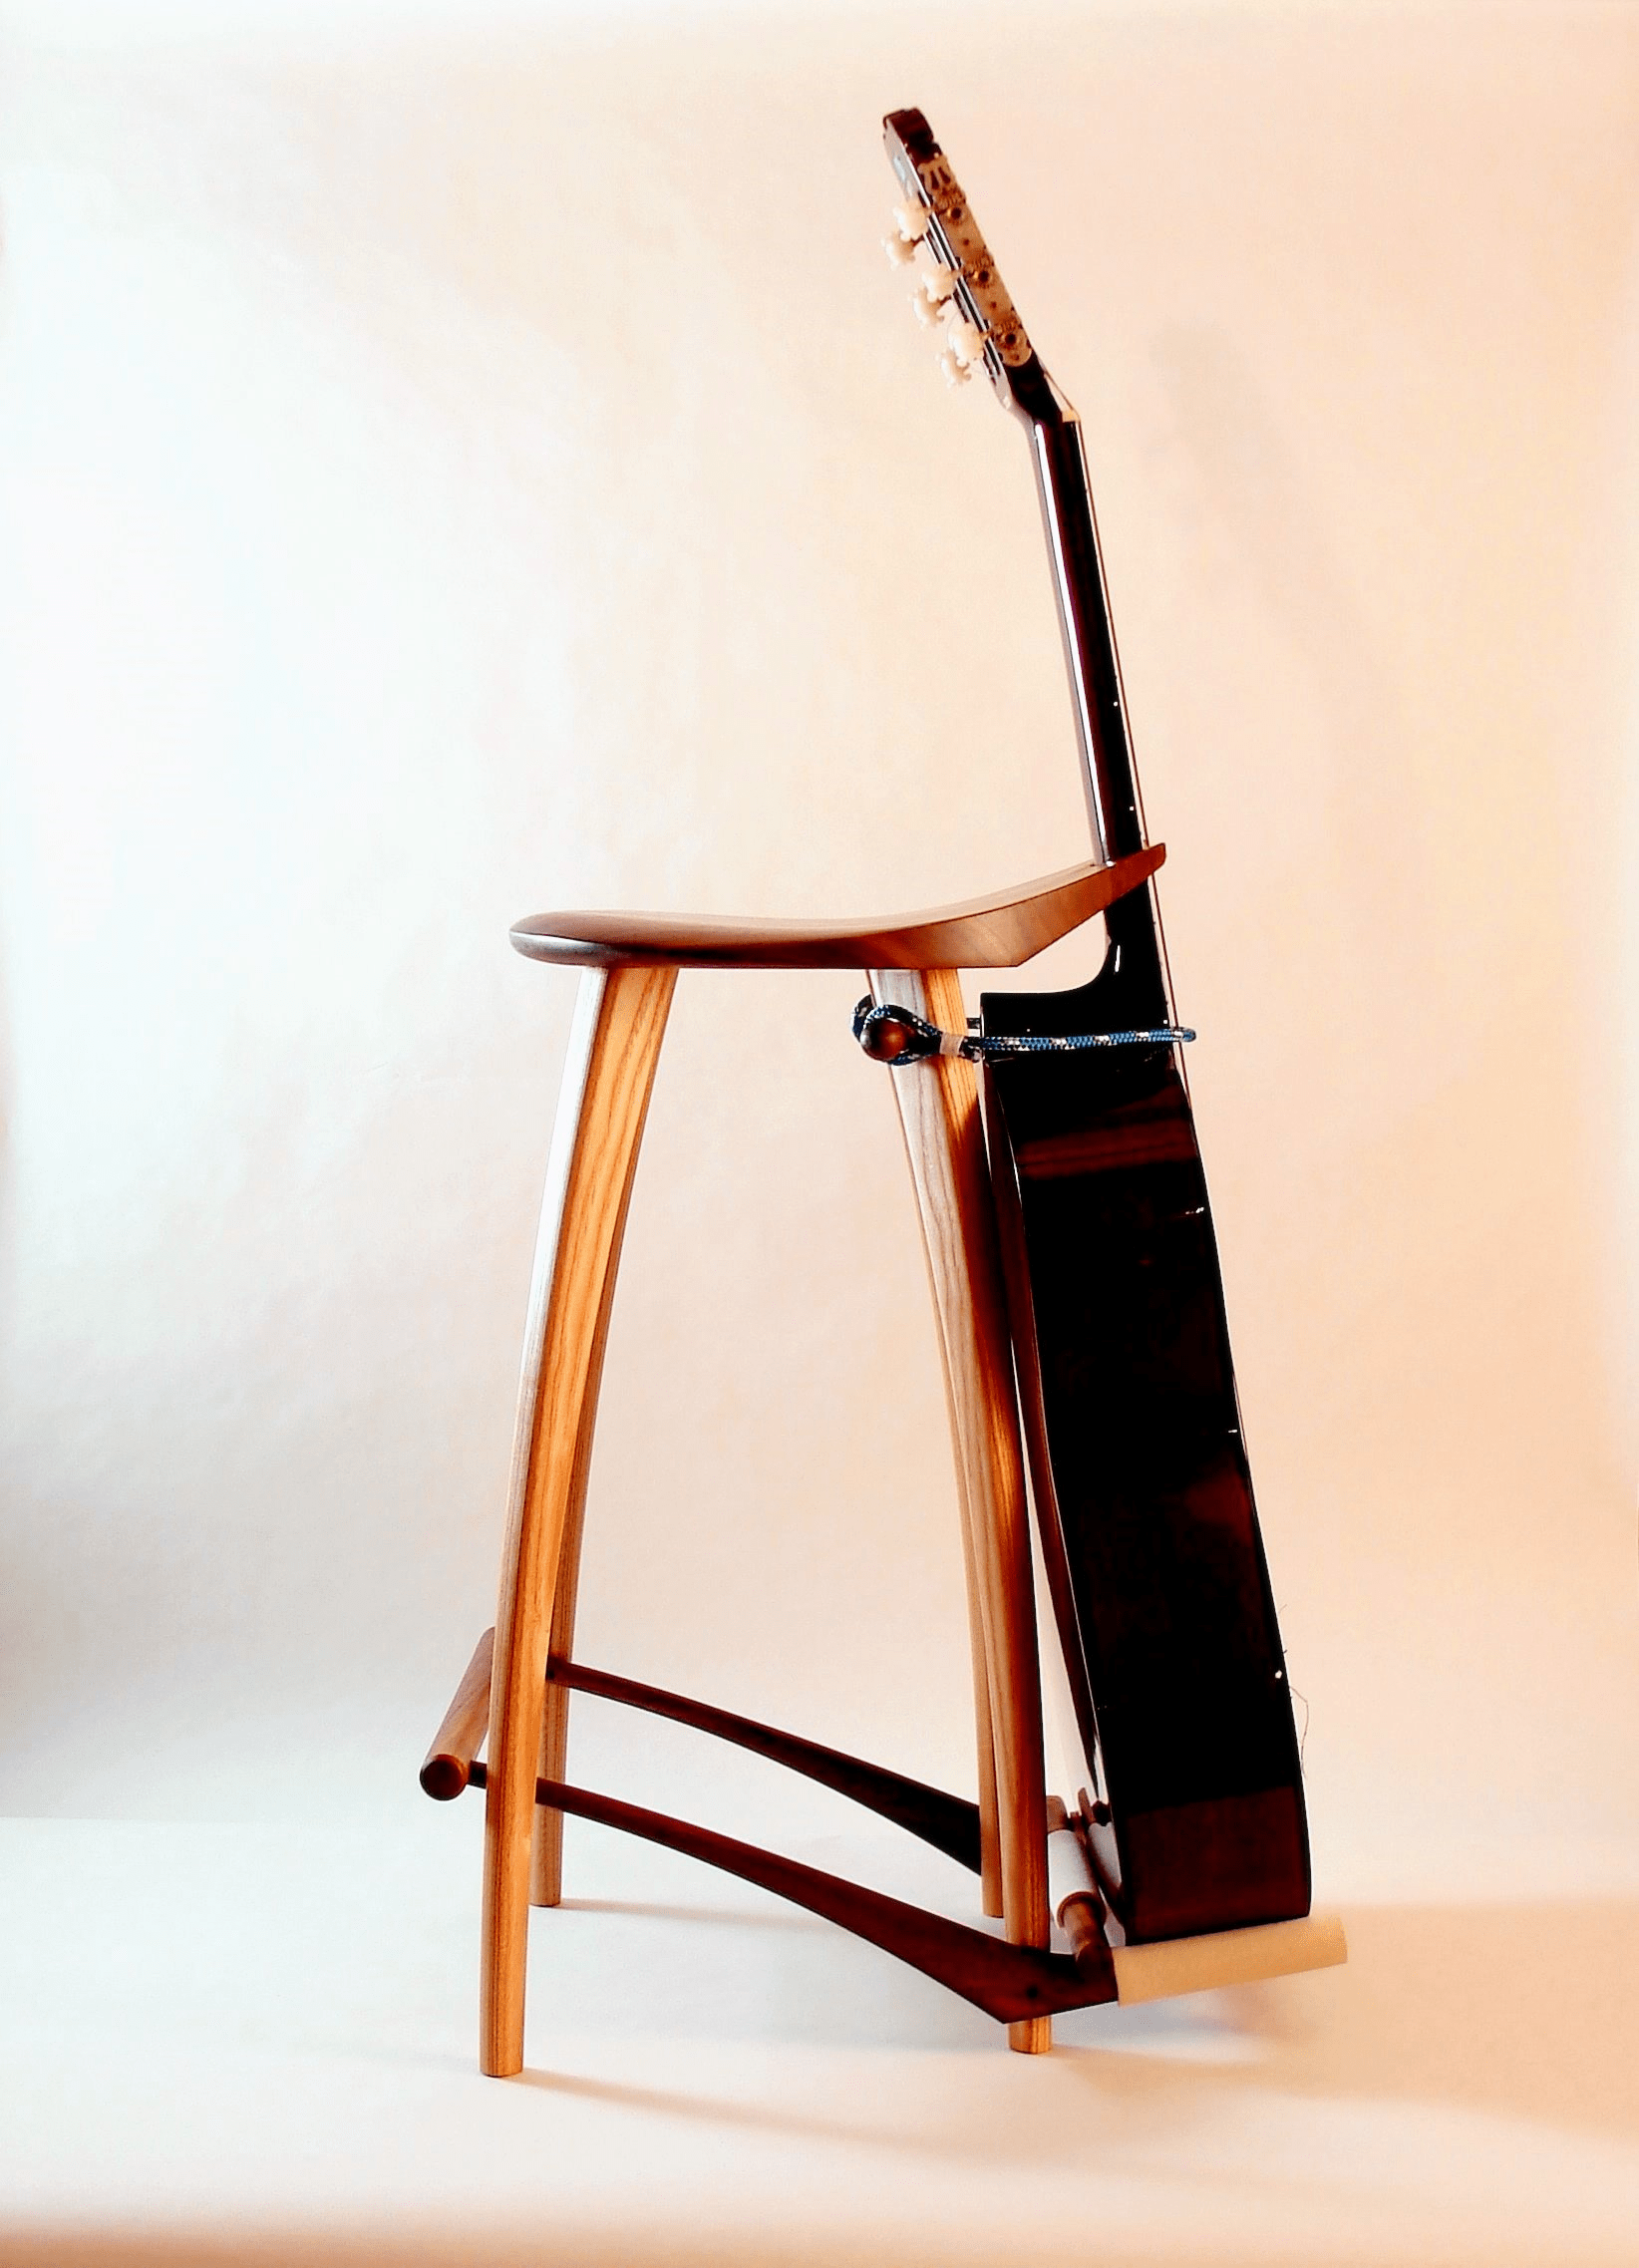 chair stands on booster cushions for elderly guitar stool fillingham art furniture design